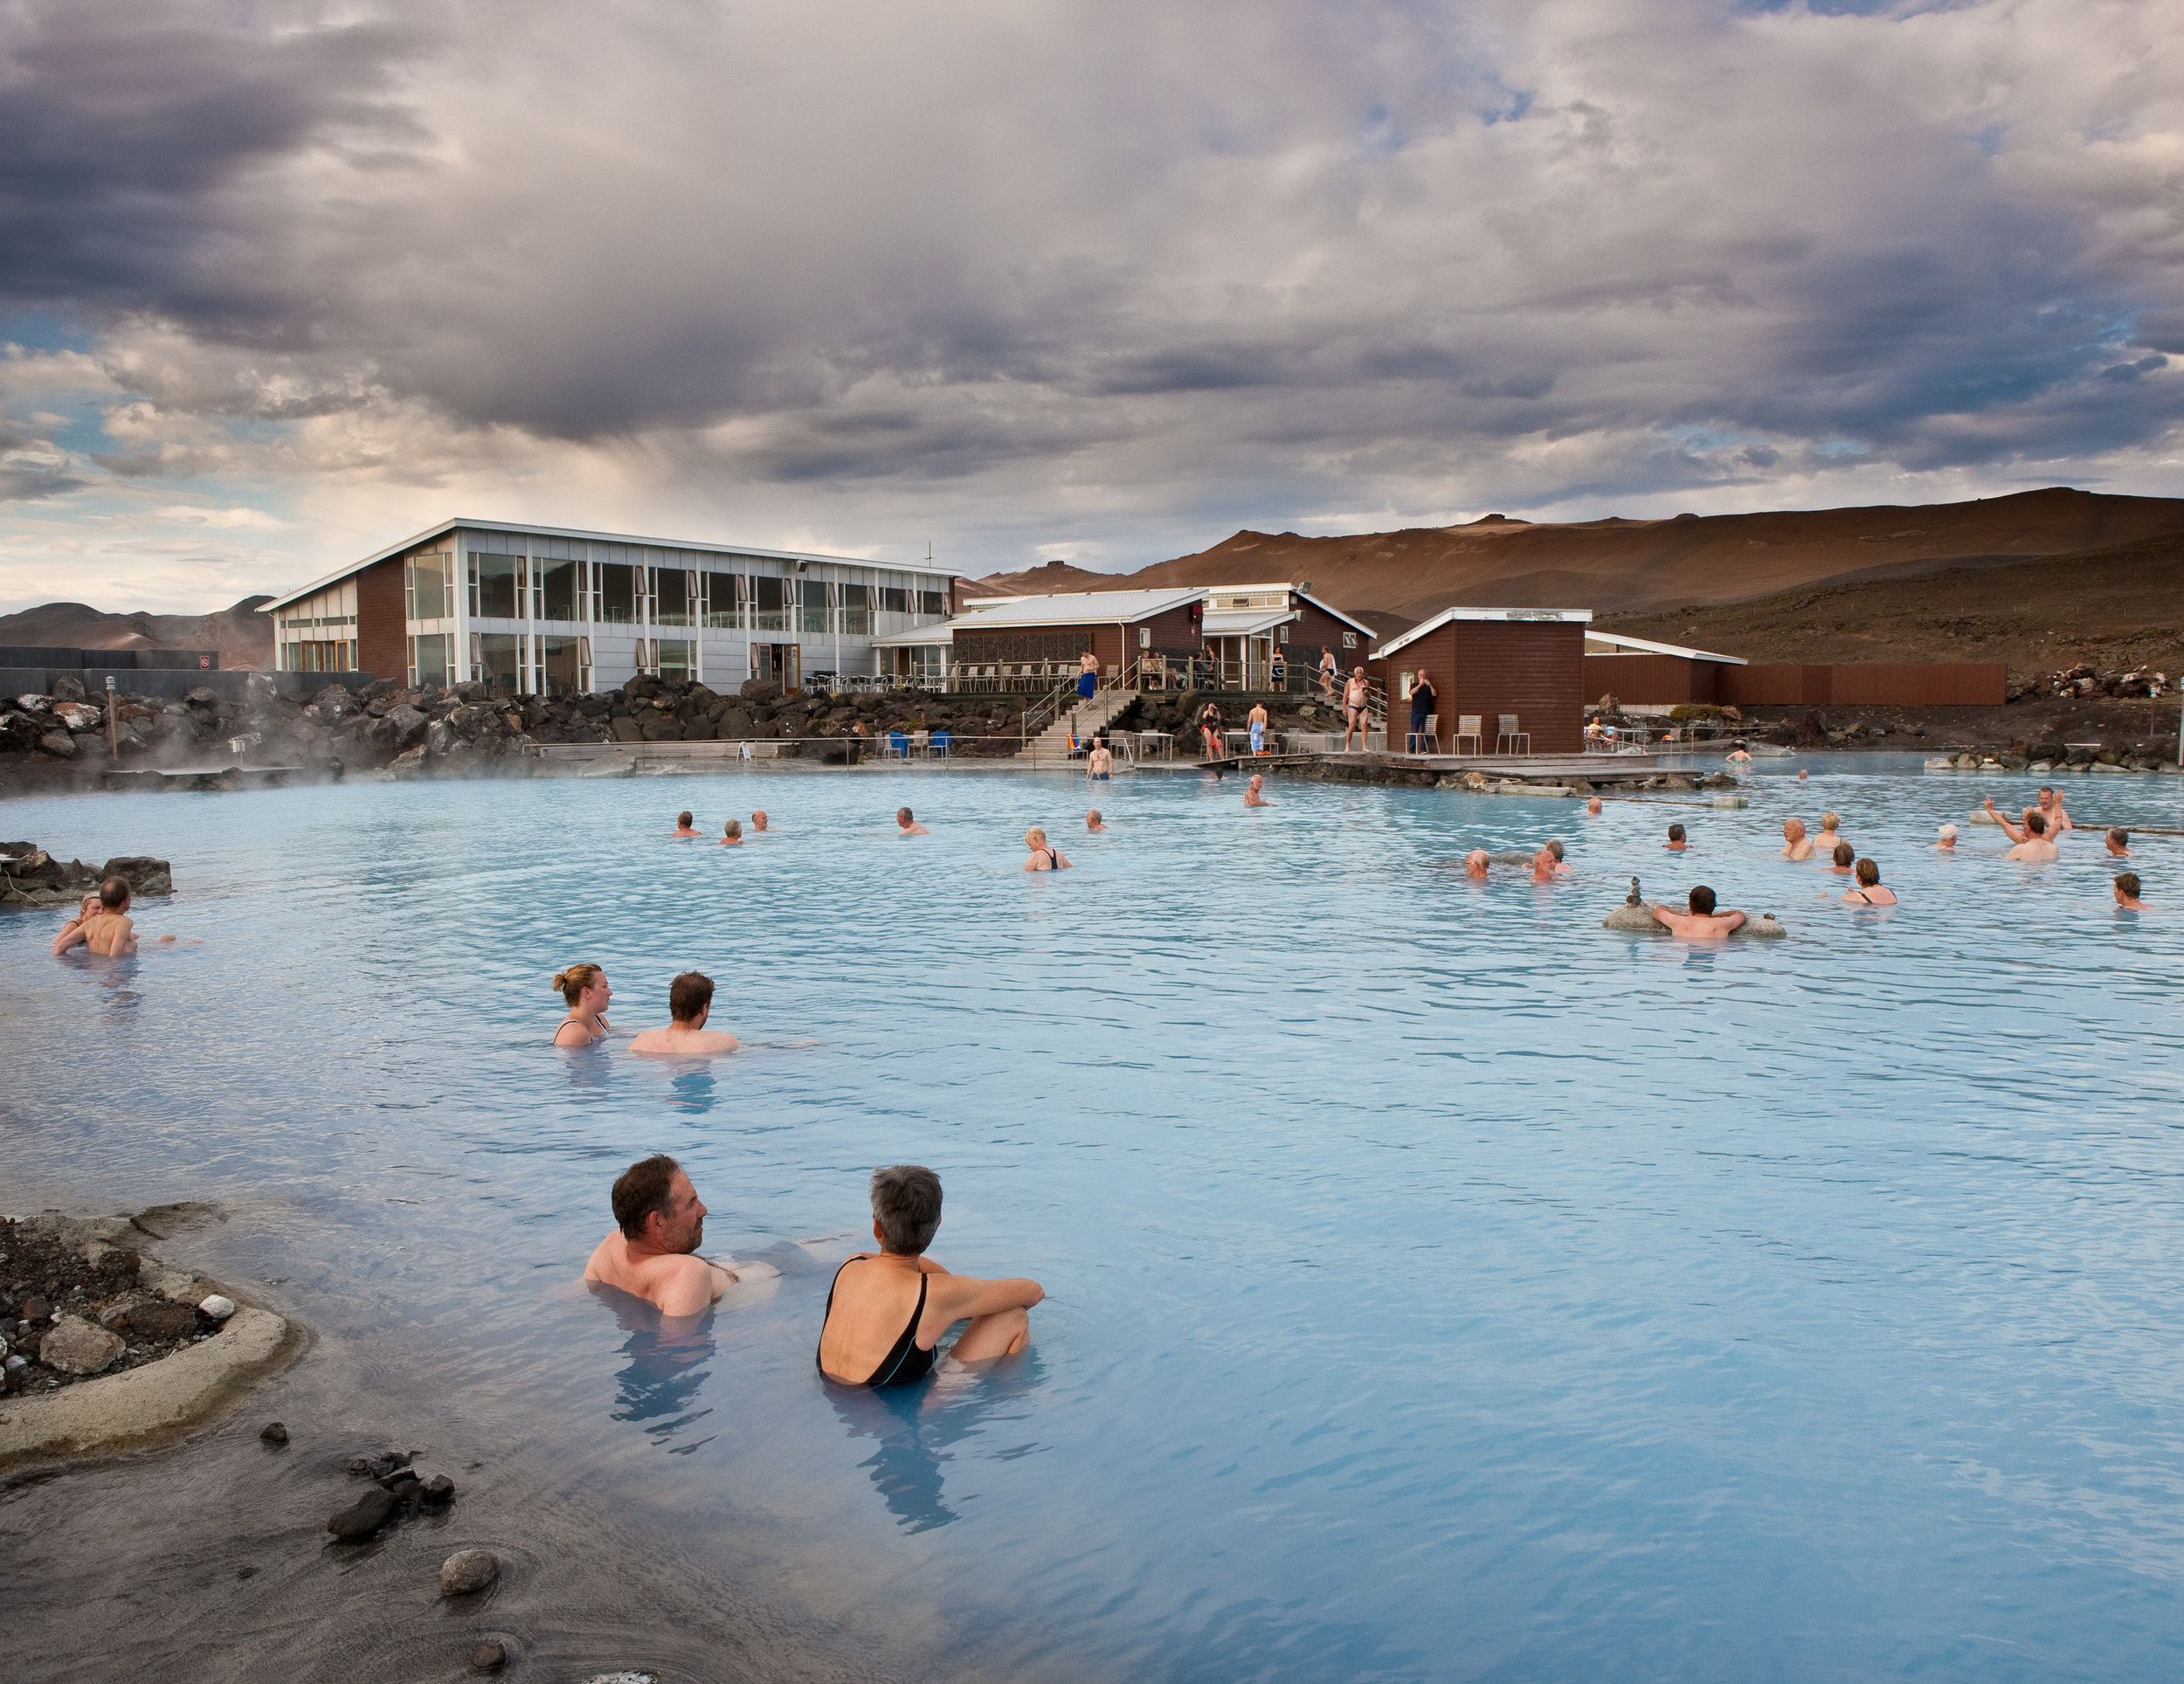 When the frost sets in, the snow is coming down, and the wind is blowing hard, it is time to head for the nearest pool or soak in a geothermal hot spring. The best way to experience the extremes of Icelandic nature is through its stark contrasts.  - Outdoor Bathing